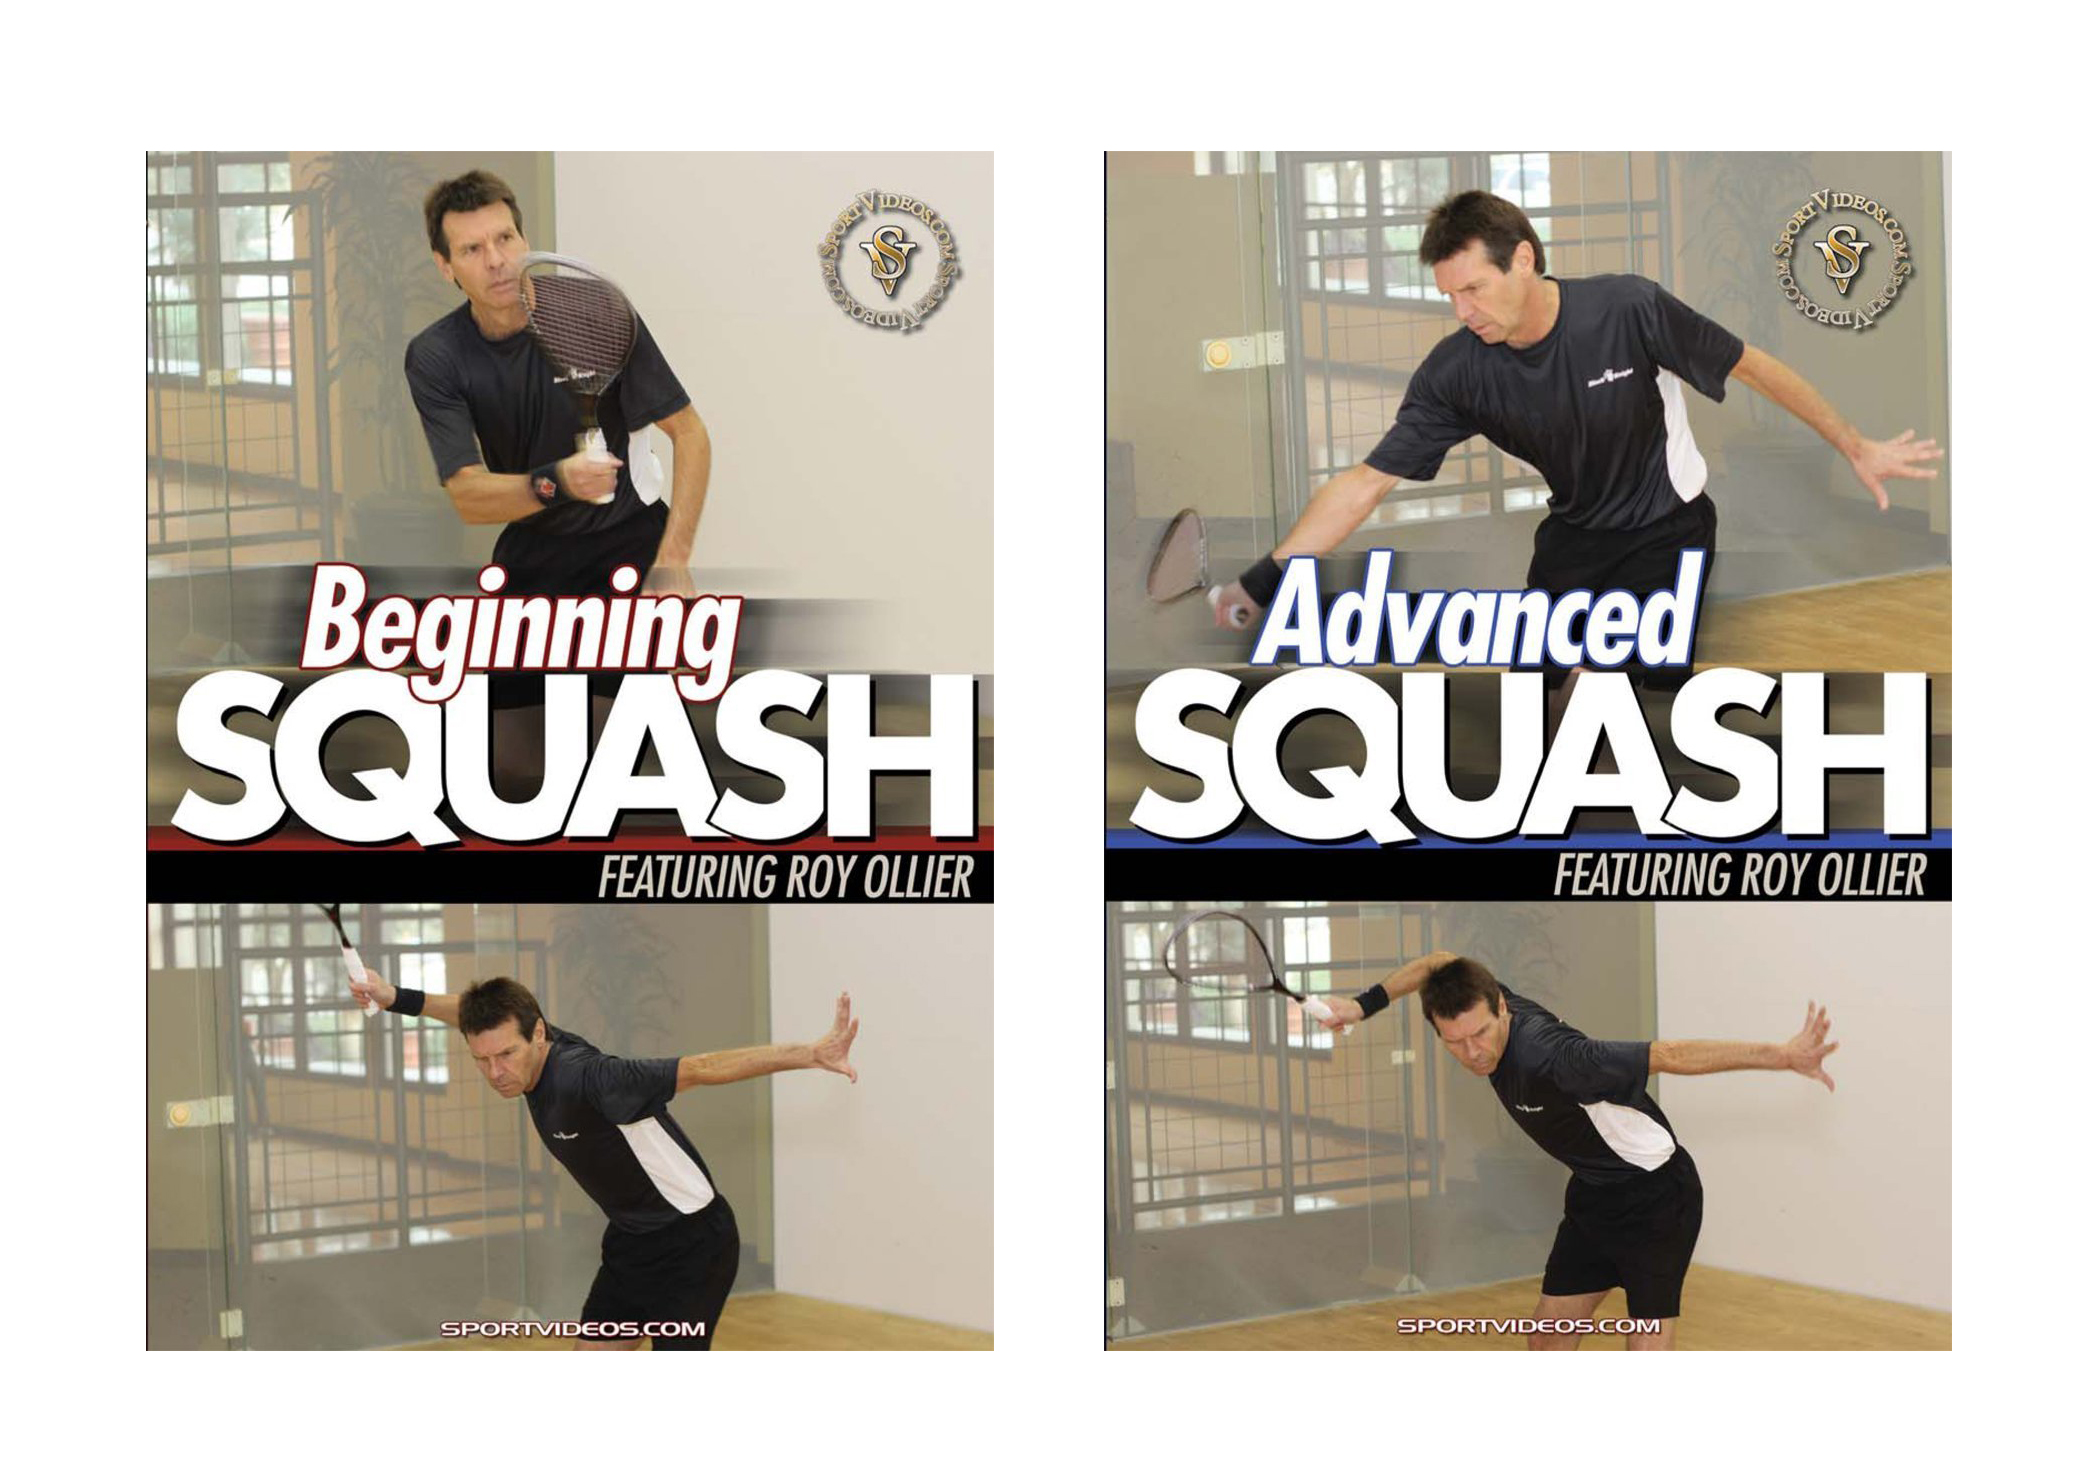 Squash 2 DVD Set or Download - Free Shipping